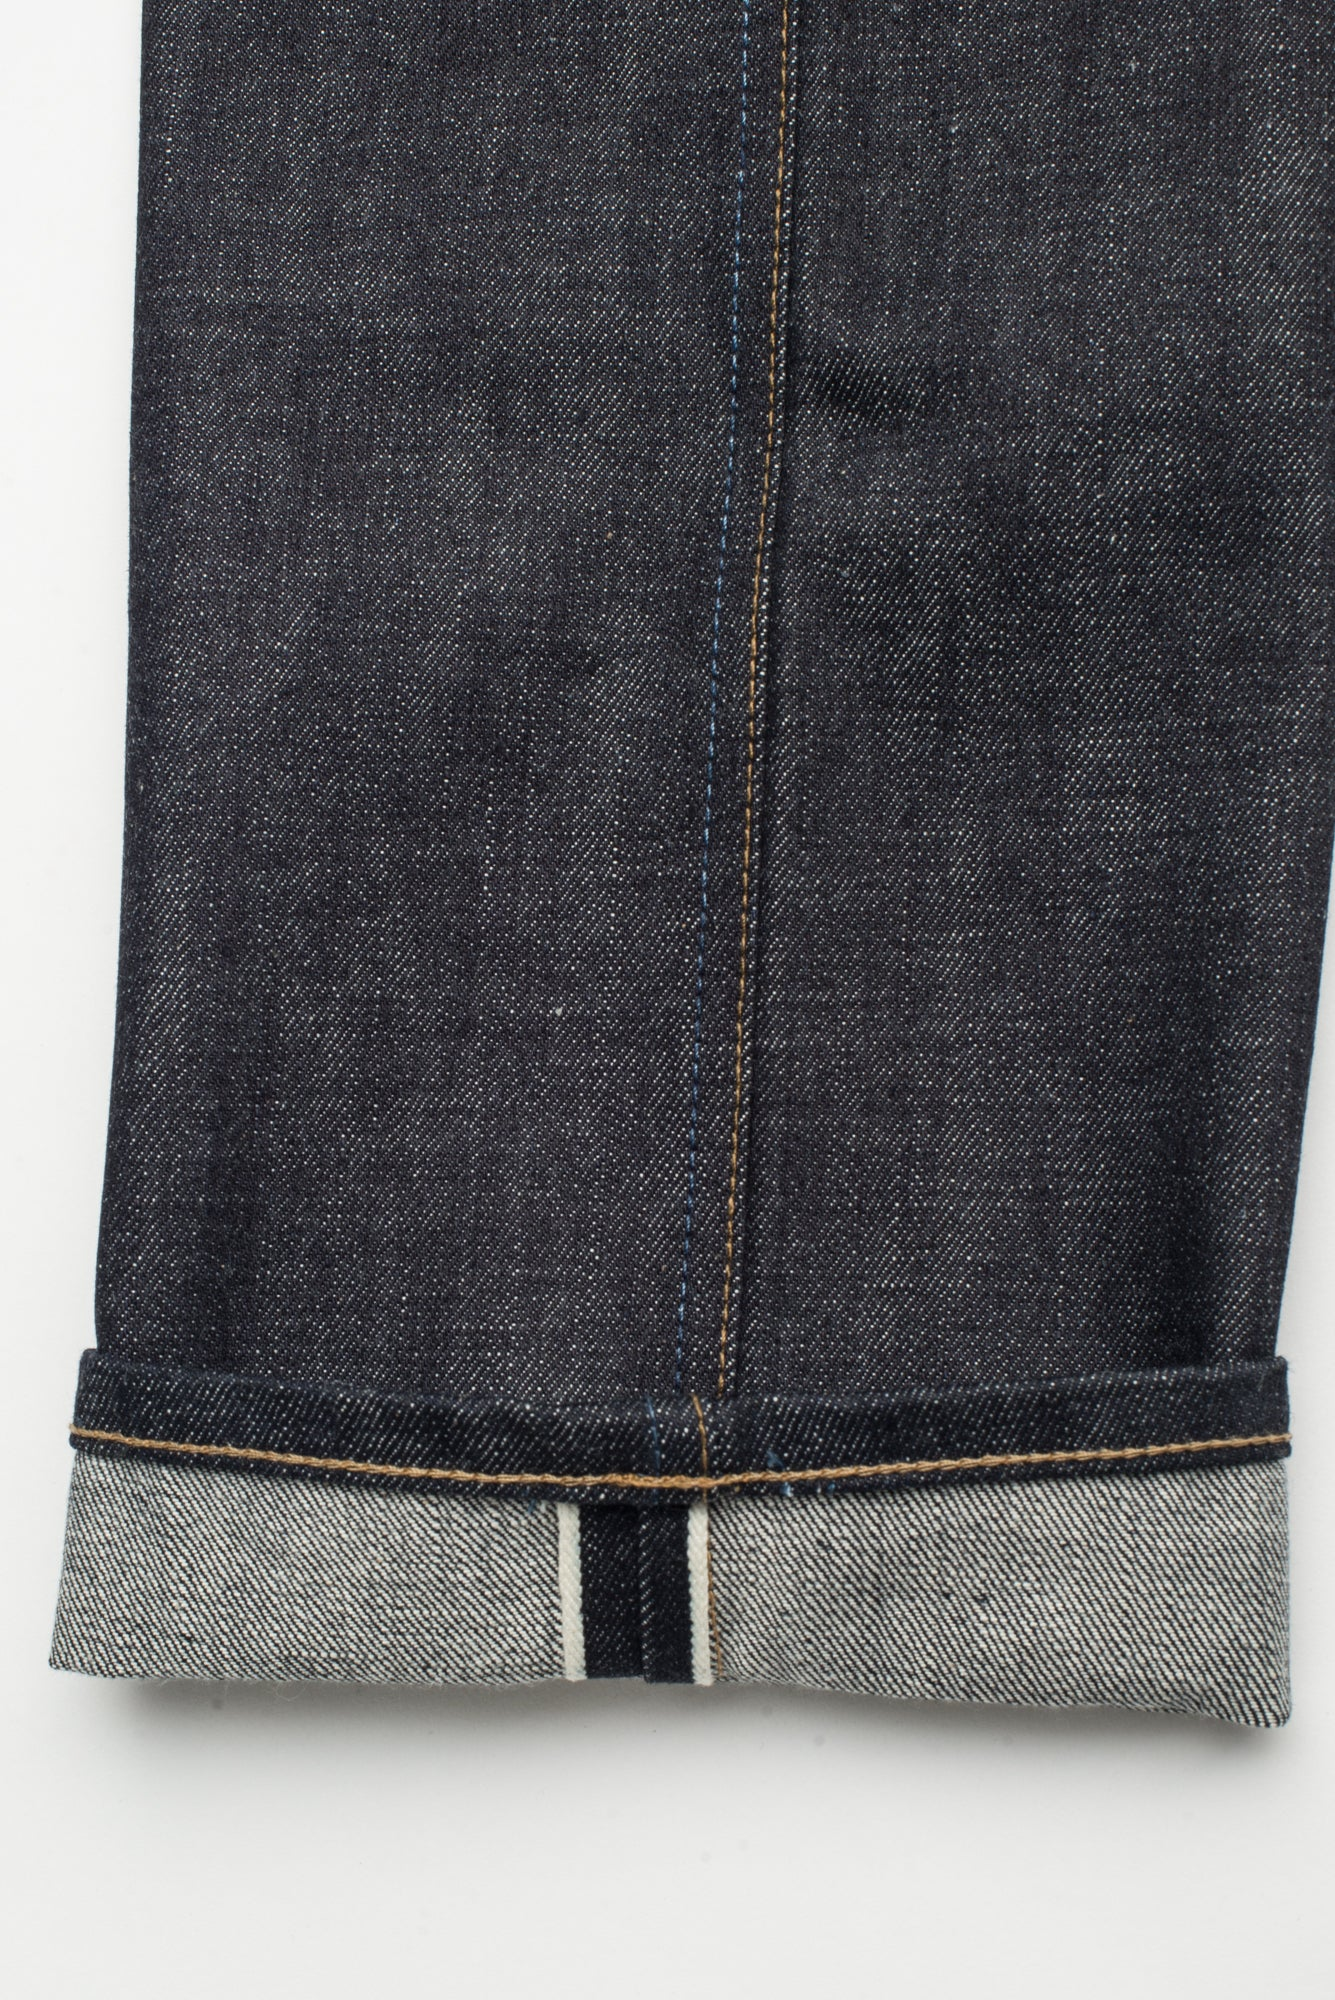 Rios 14 ounce Blue Selvedge ID